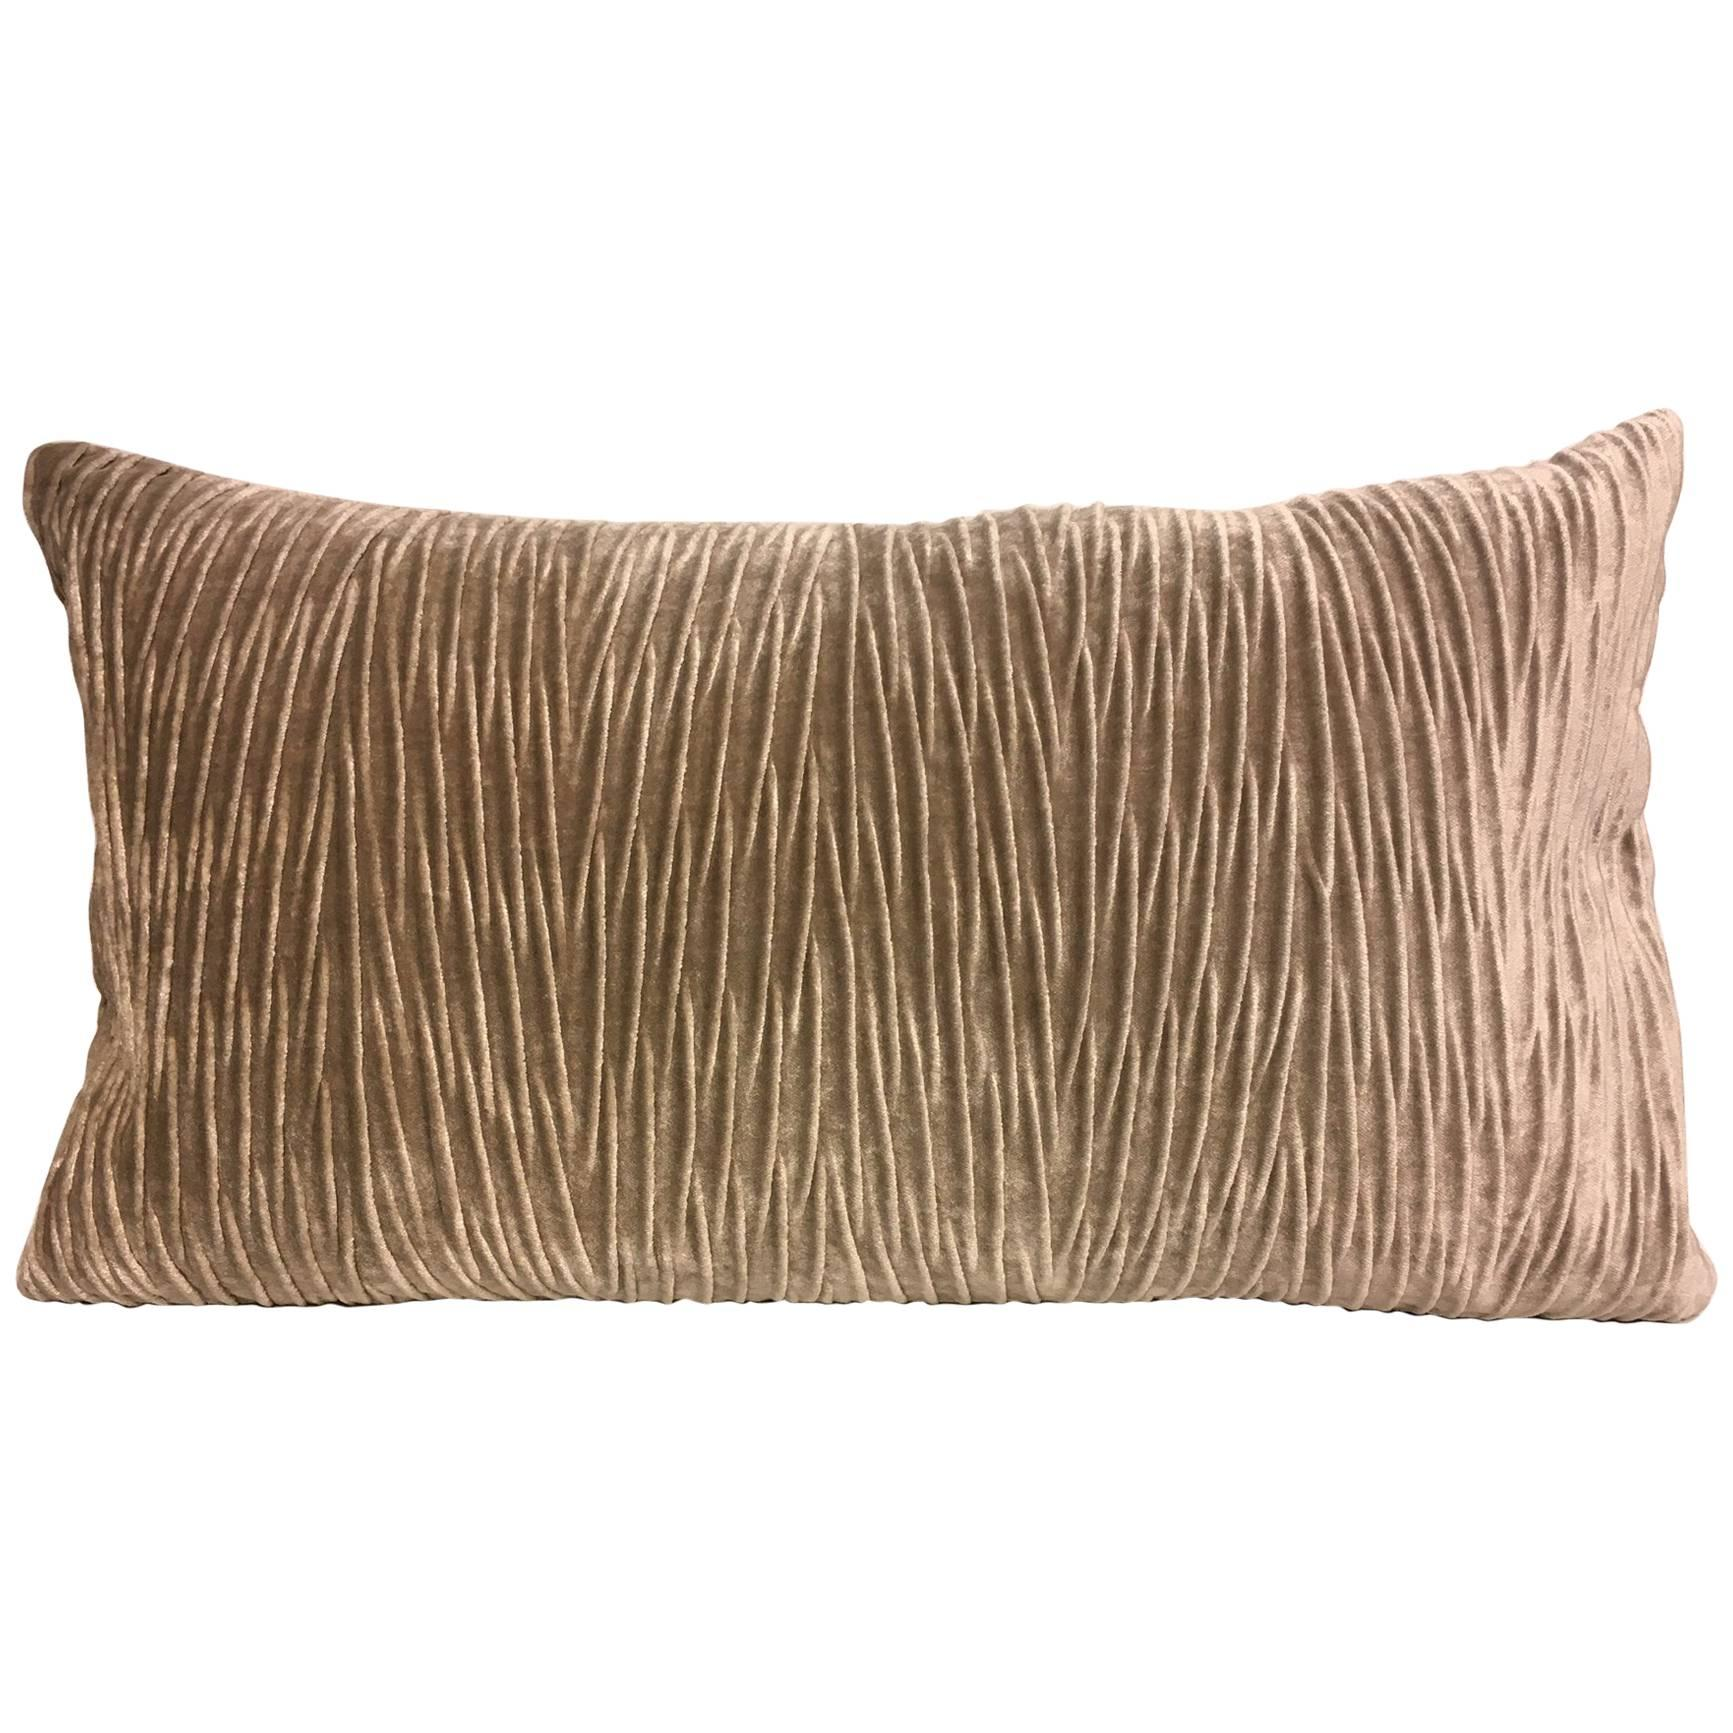 Cushion with Pleated Front Panel in Wave Pattern Vertical on Velvet